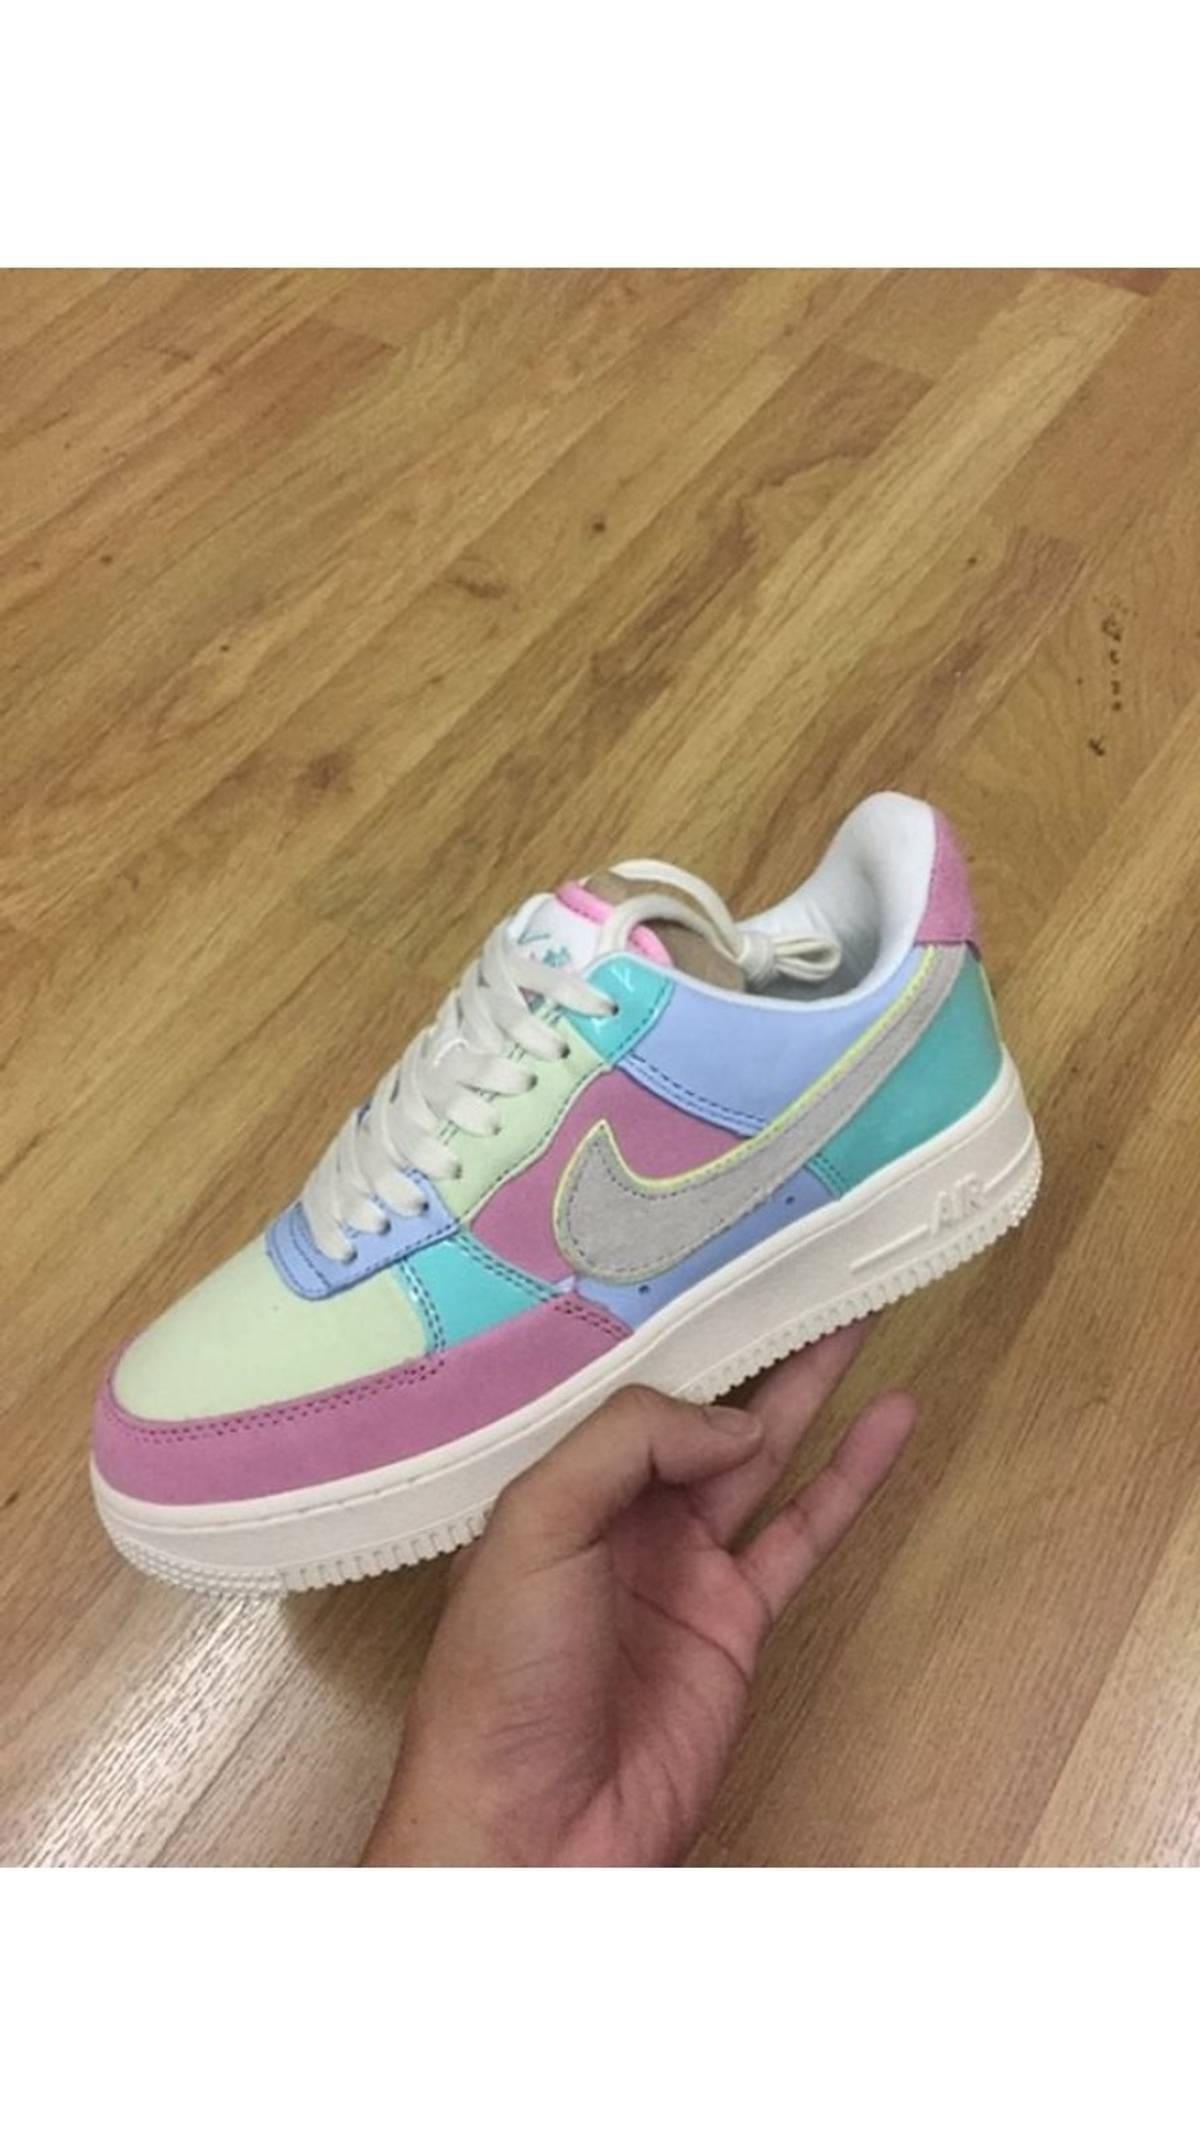 Af1 Force 2018 6 Air Egg 5180 Easter Size 1 Nike wm80Nn